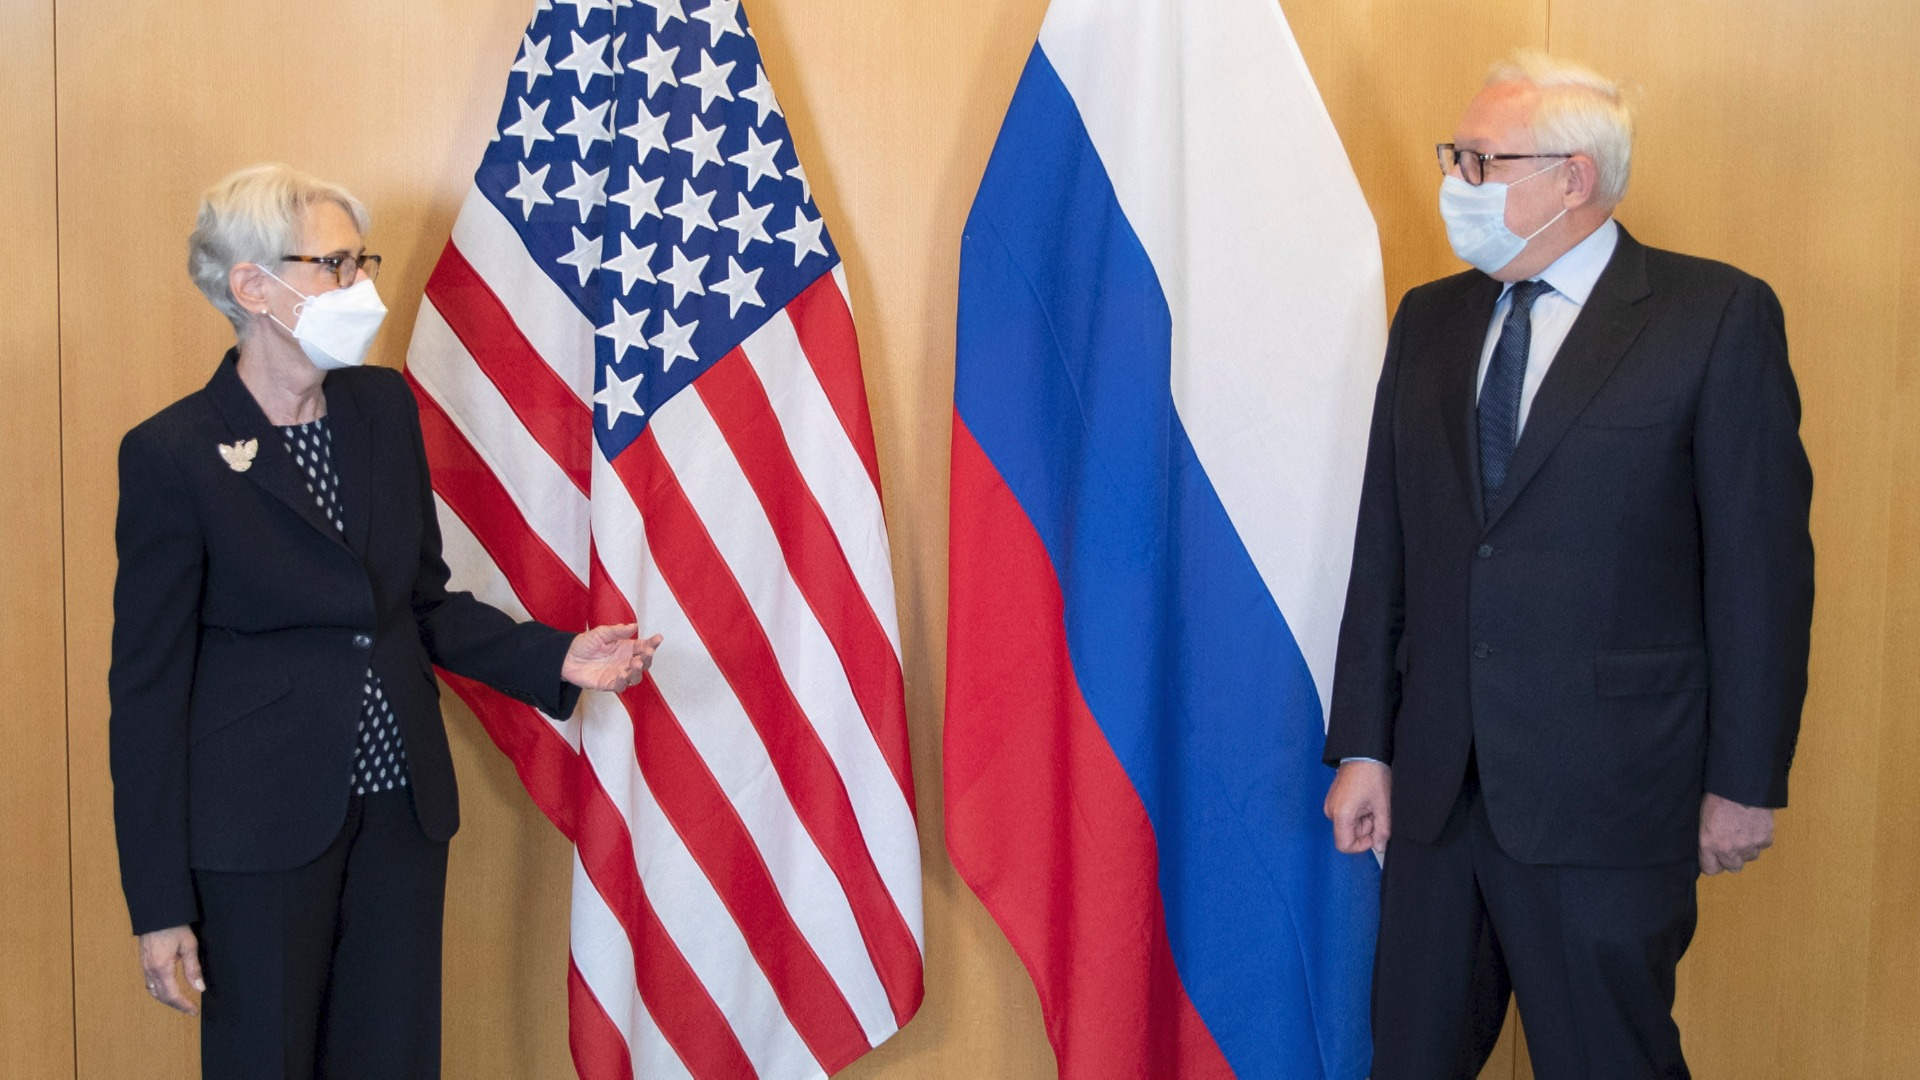 Nuclear talks overshadowed by war of words between Washington and Moscow